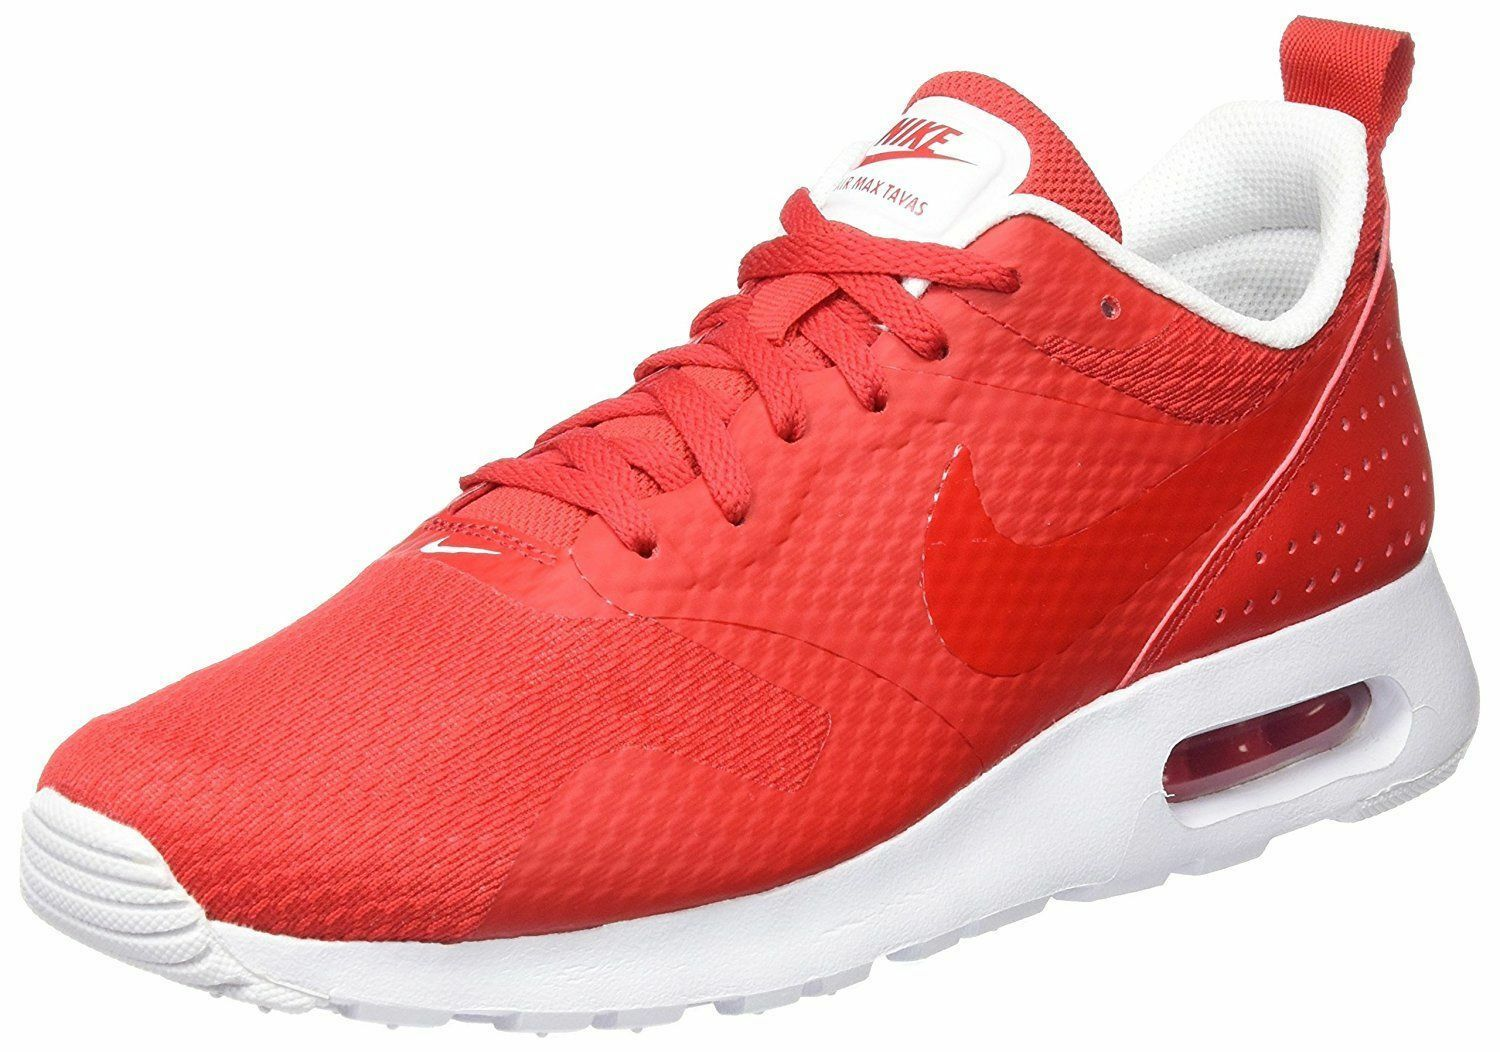 Nike Hommes Air Max 705149-605 100% Authentic Tavas rouge /blanc 705149-605 Max Size8.5-12 8598f4